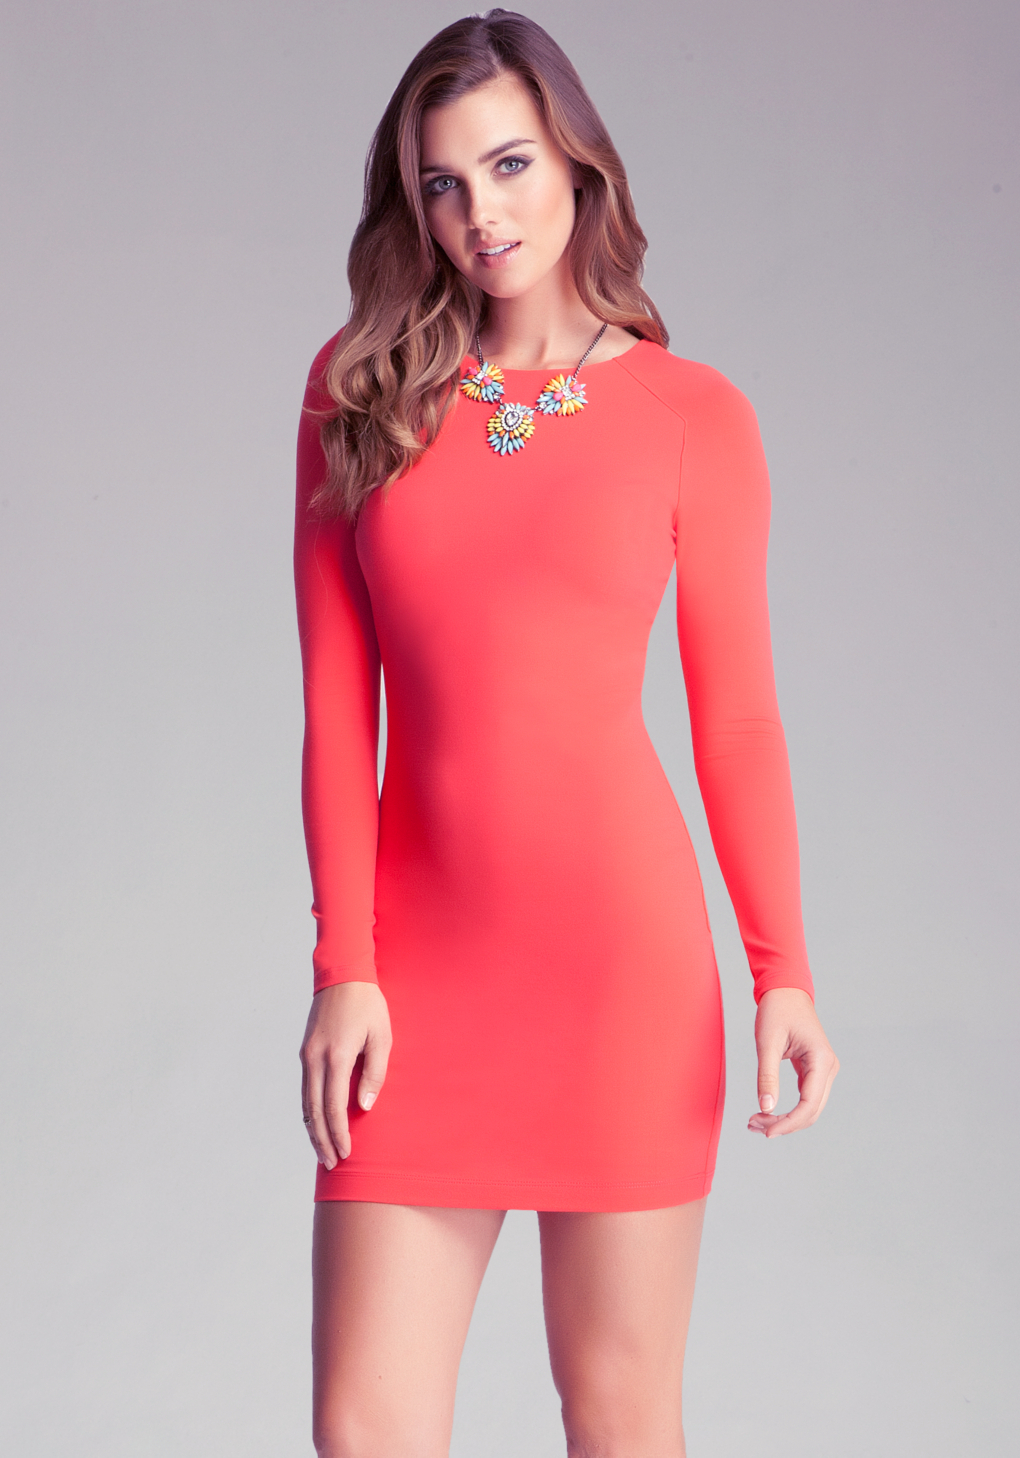 Angeles halifax bodycon a what sleeves with is dress consignment shops